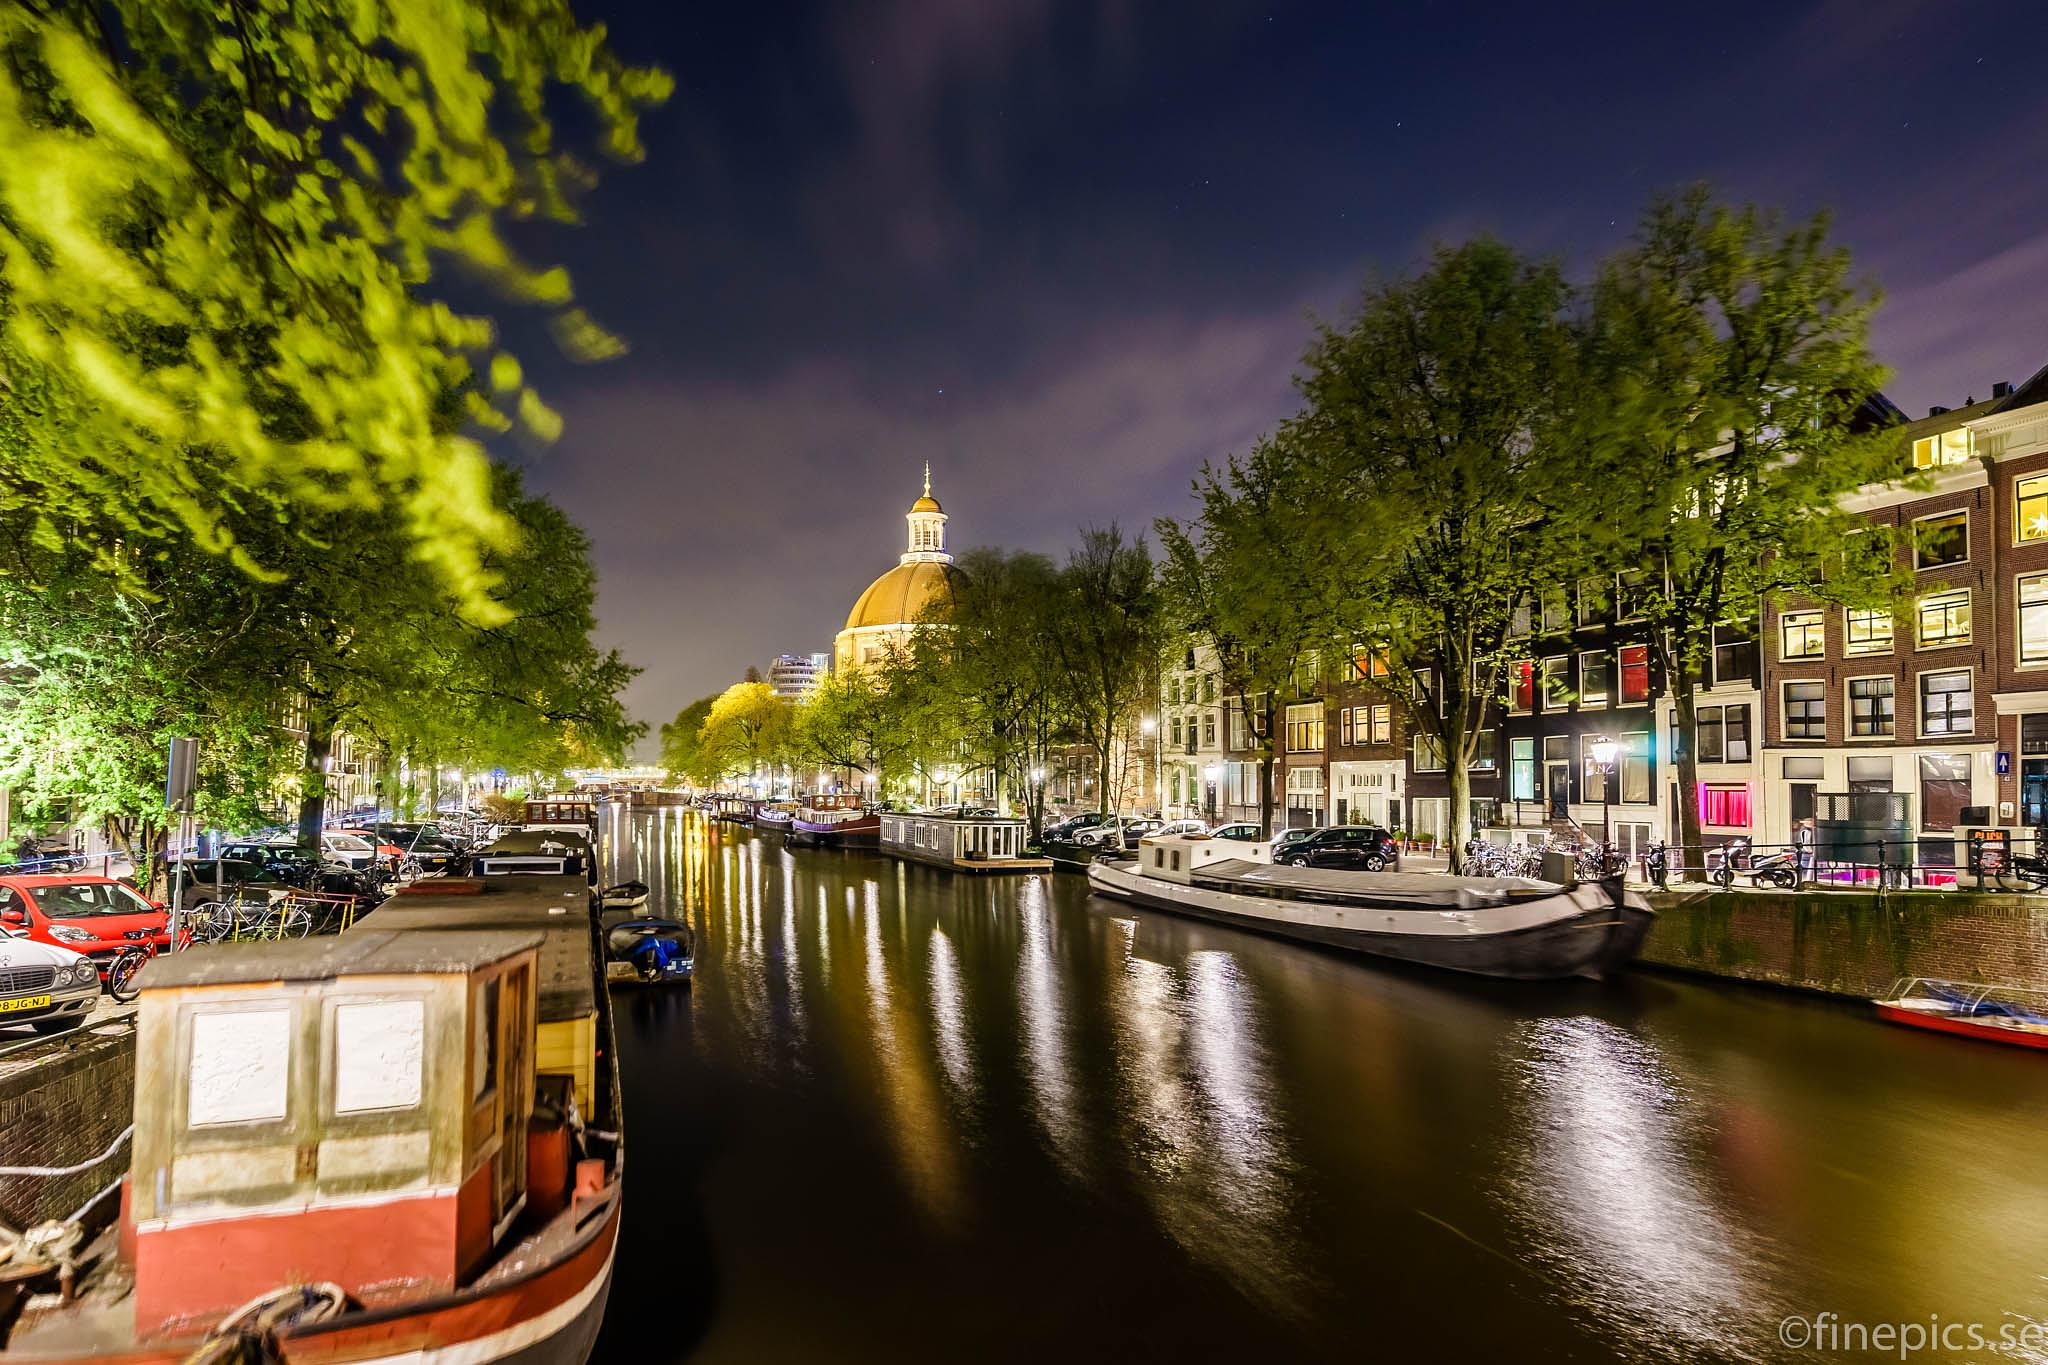 Another picture from the Amsterdam canals. by Johan Bergenstråhle